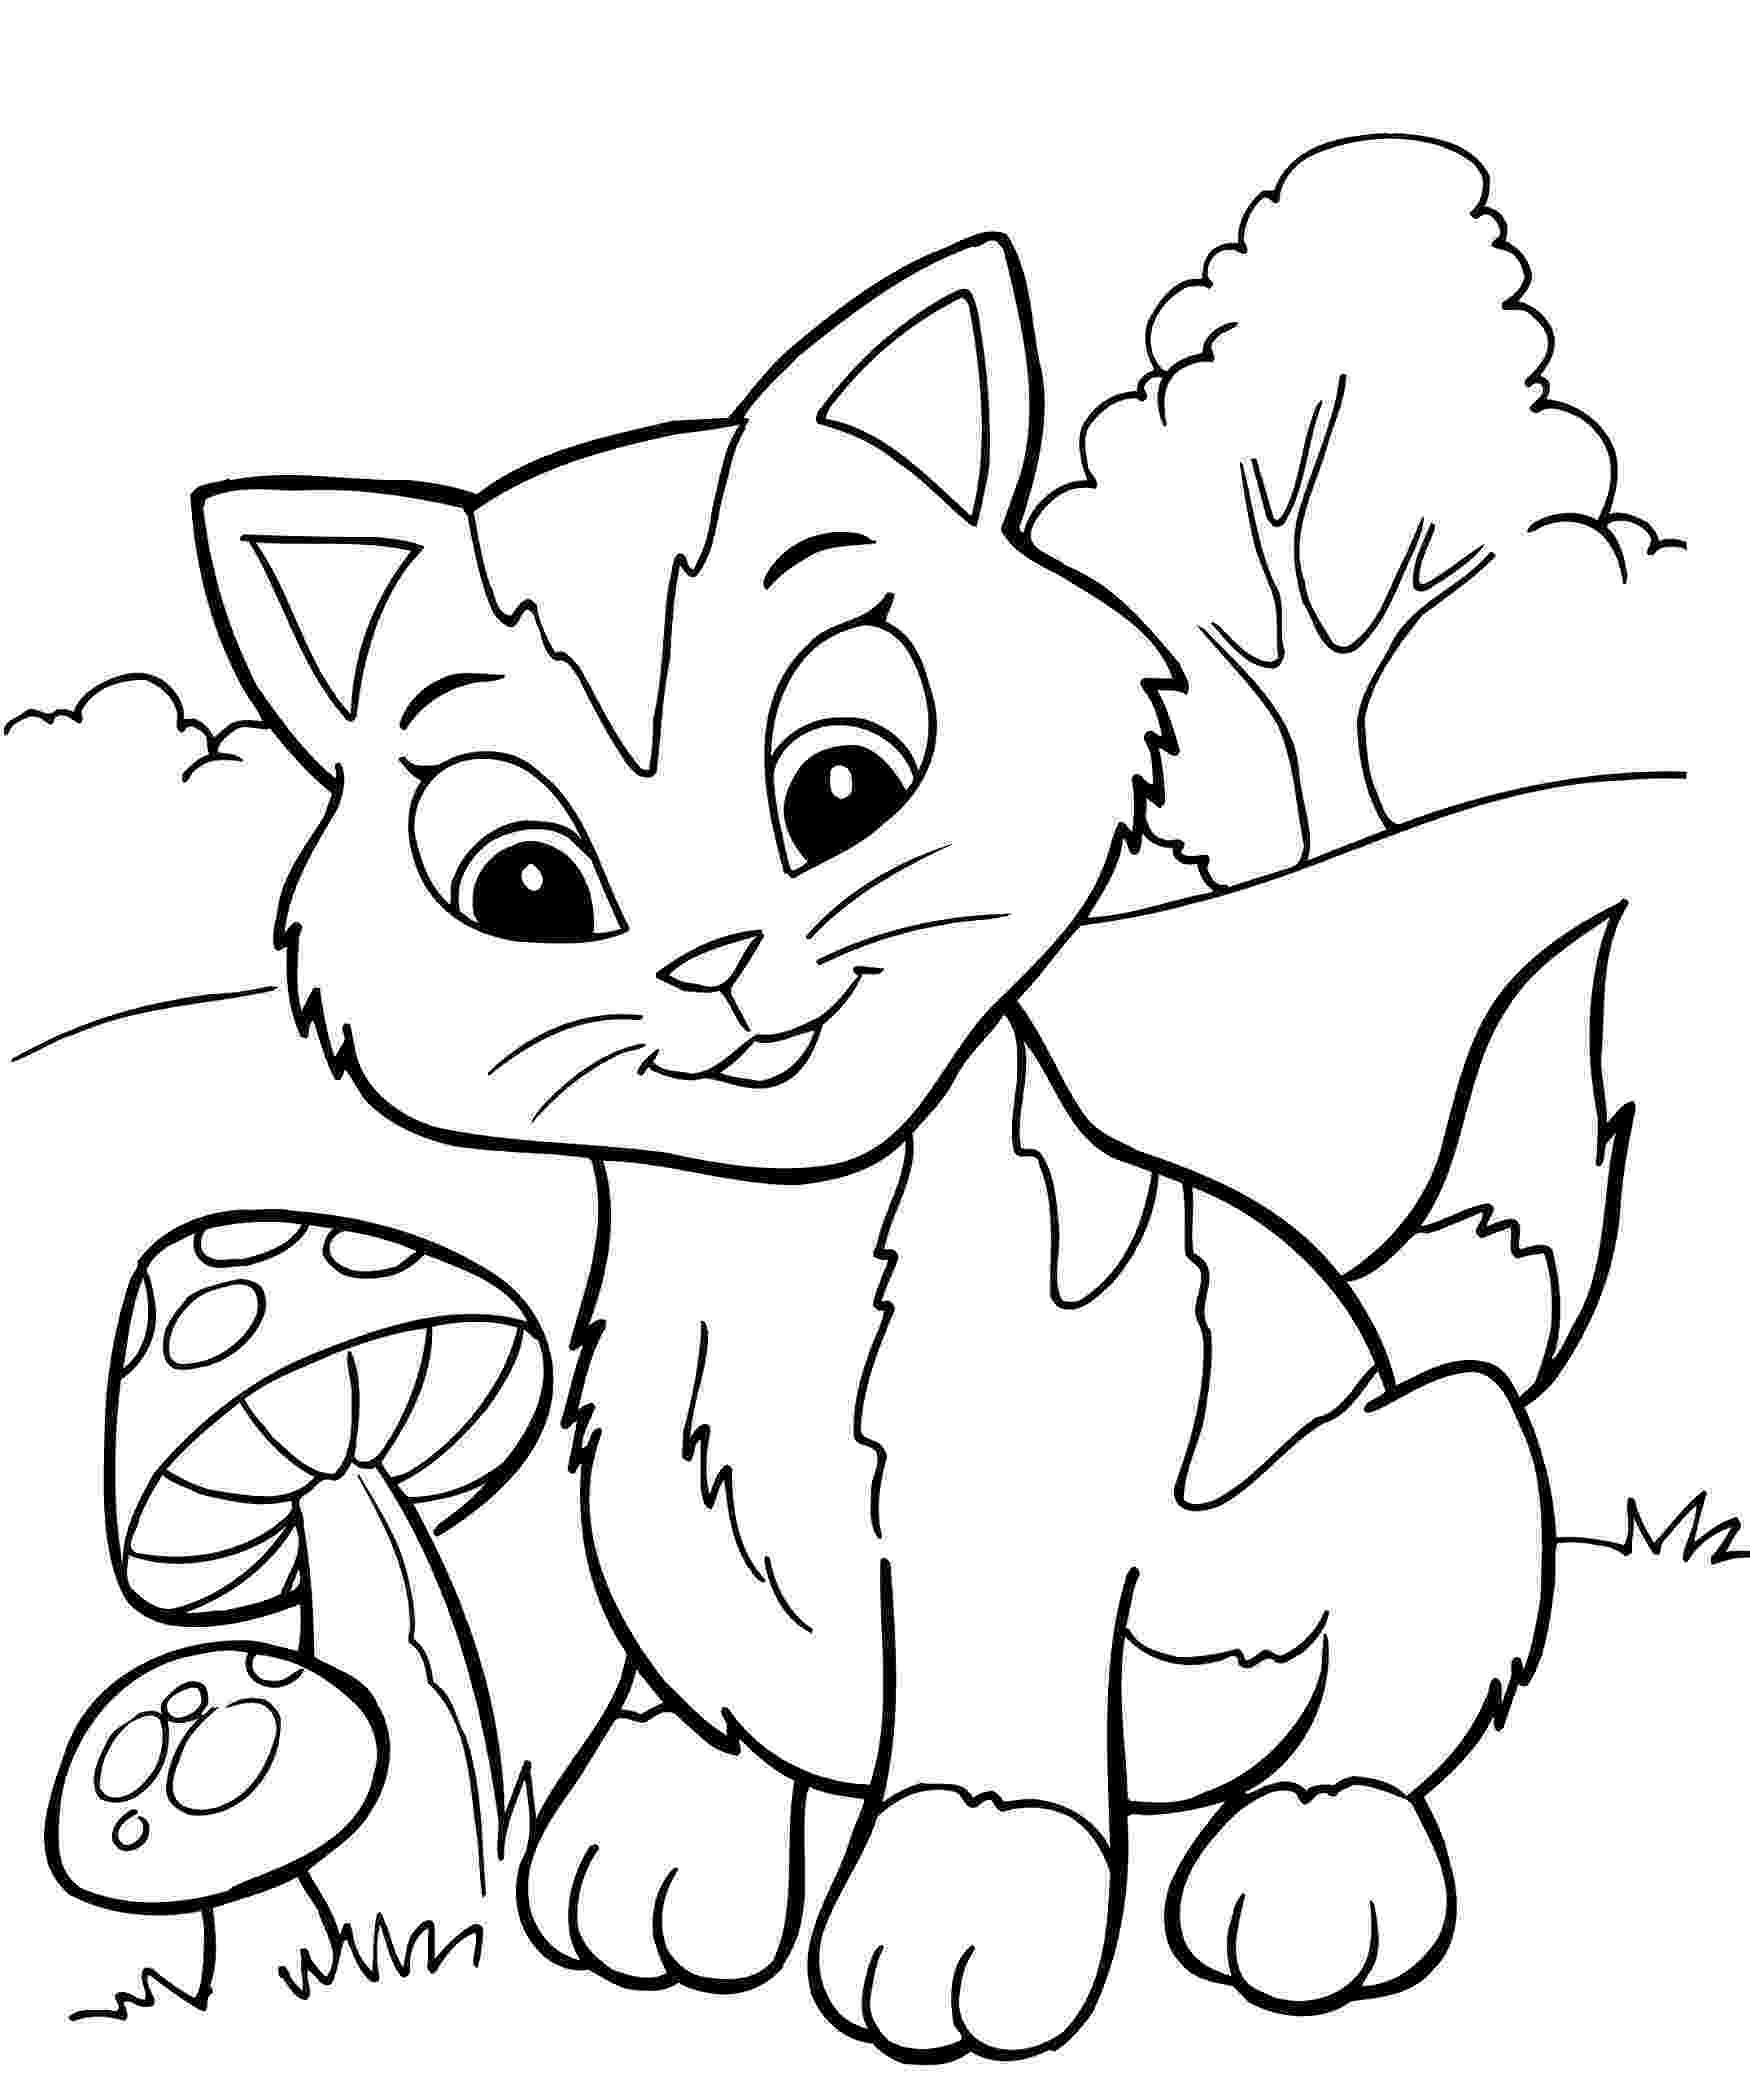 coloring cat pages cat coloring page getcoloringpagescom pages coloring cat